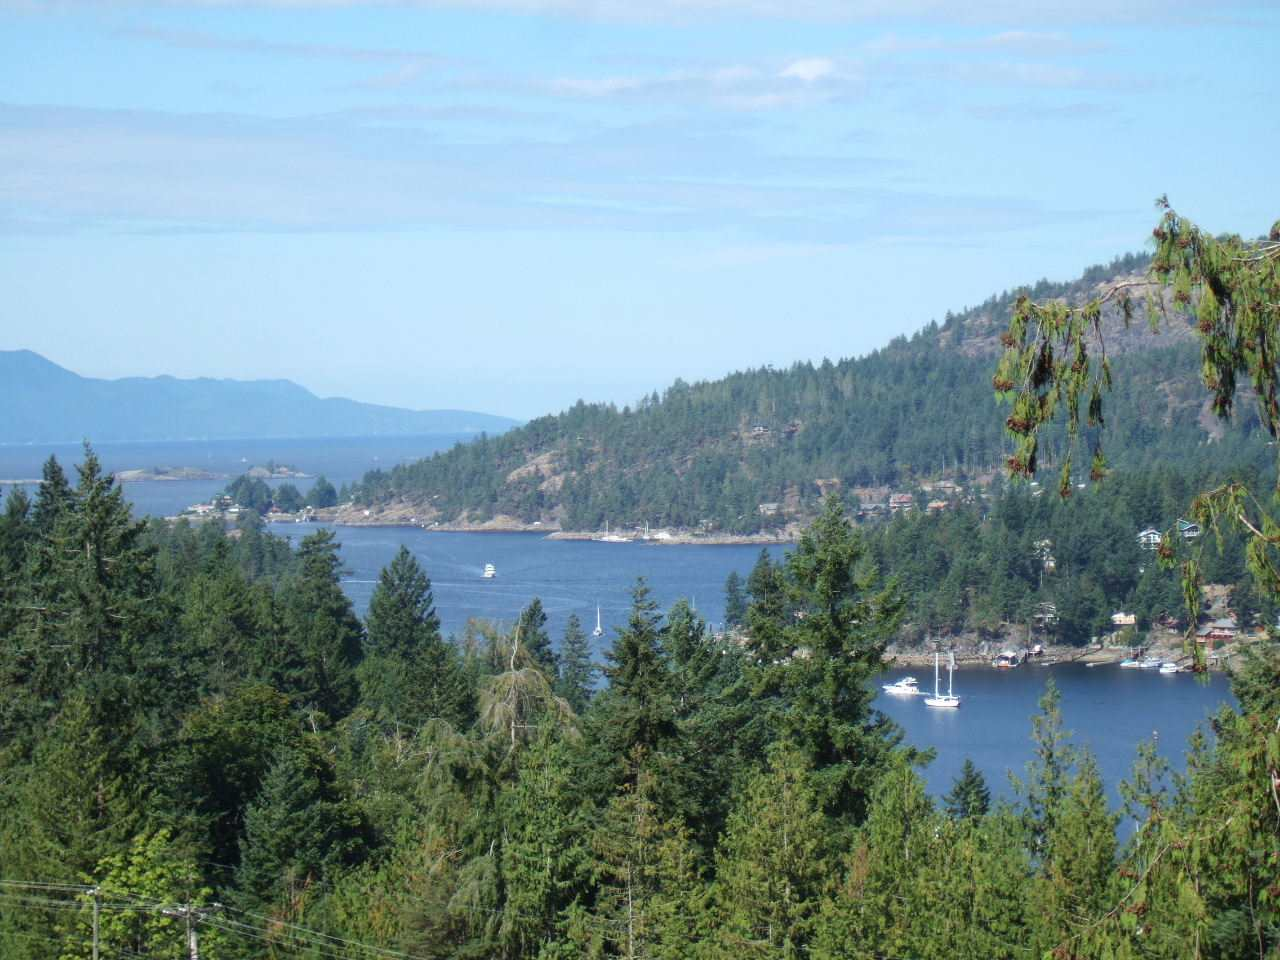 Awesome Westerly views of Pender Harbour and Malaspina Strait, from this 1/2 acre residential Building Lot in central Madeira Park. Freehold (fee simple) Ownership (no strata fees!) & location is within walking distance to village amenities including moorage and boat ramp. GST on Purchase Price.